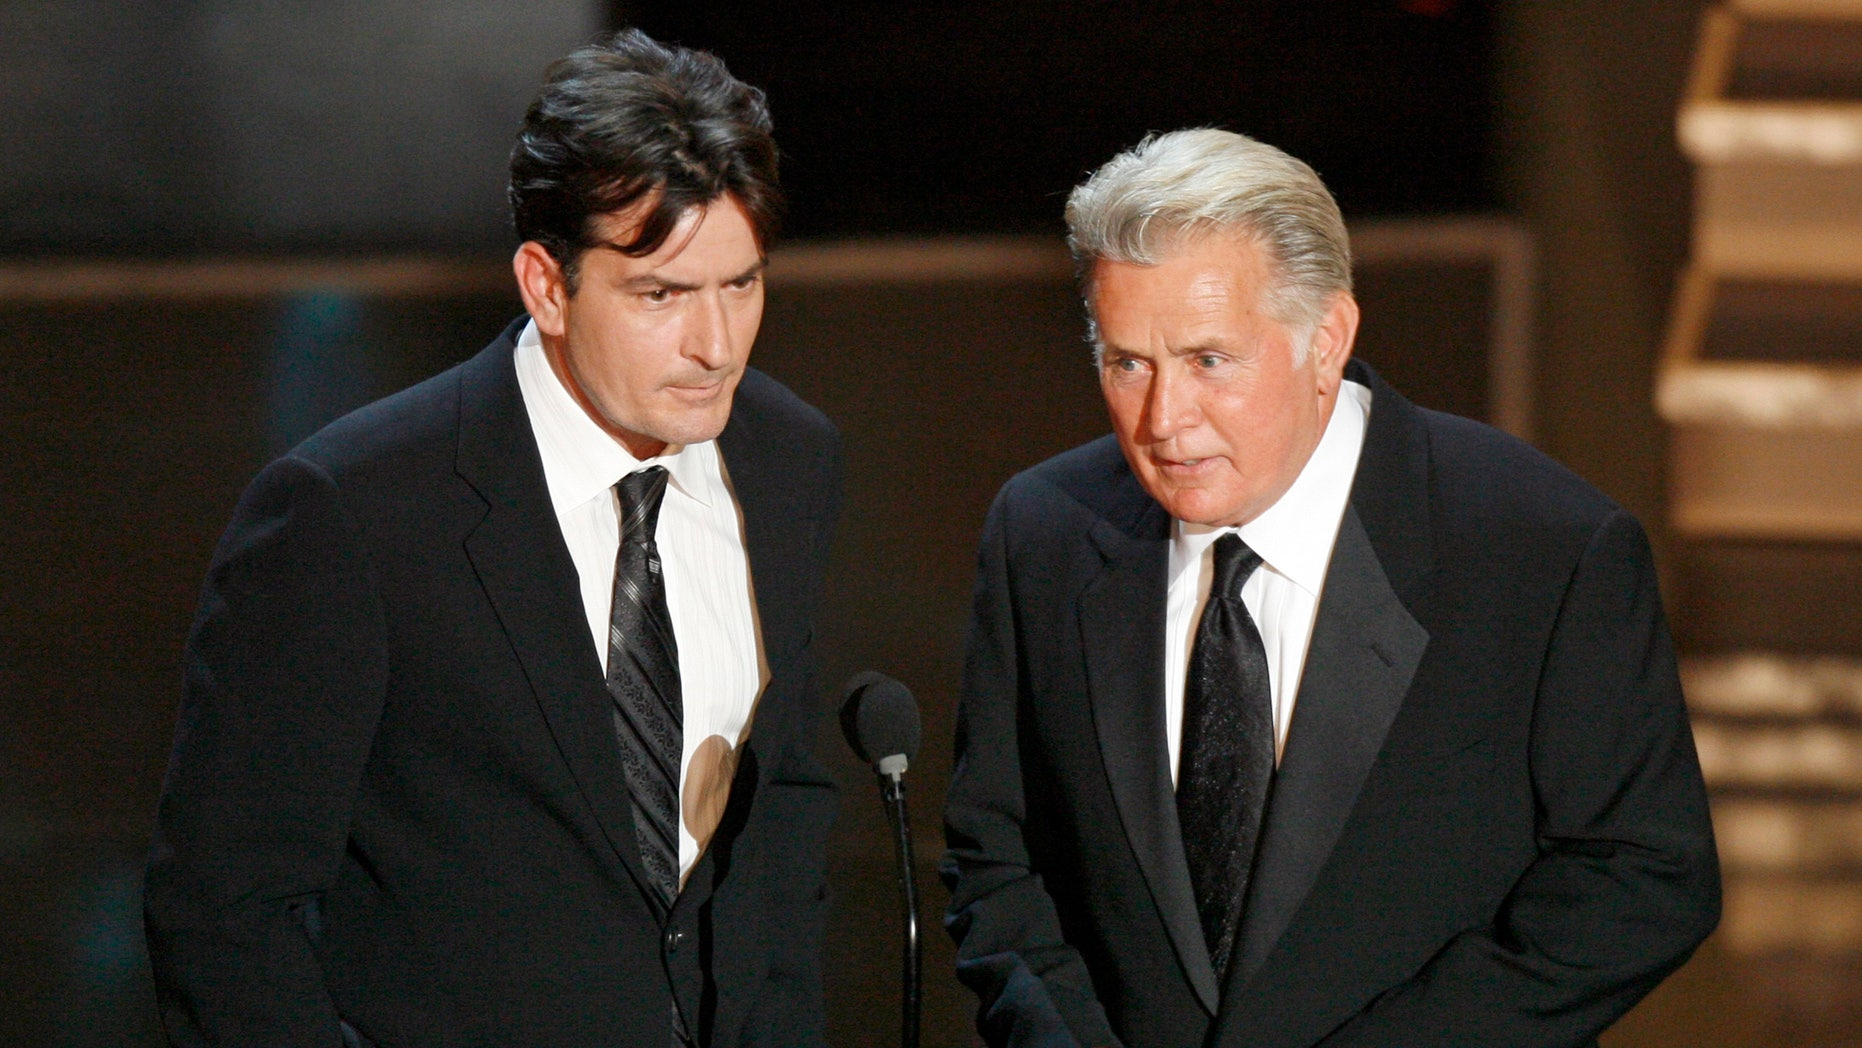 Charlie Sheen, left, and his father Martin Sheen present the best supporting actress in a miniseries or movie award during the 58th annual Primetime Emmy Awards at the Shrine Auditorium in Los Angeles August 27, 2006.  REUTERS